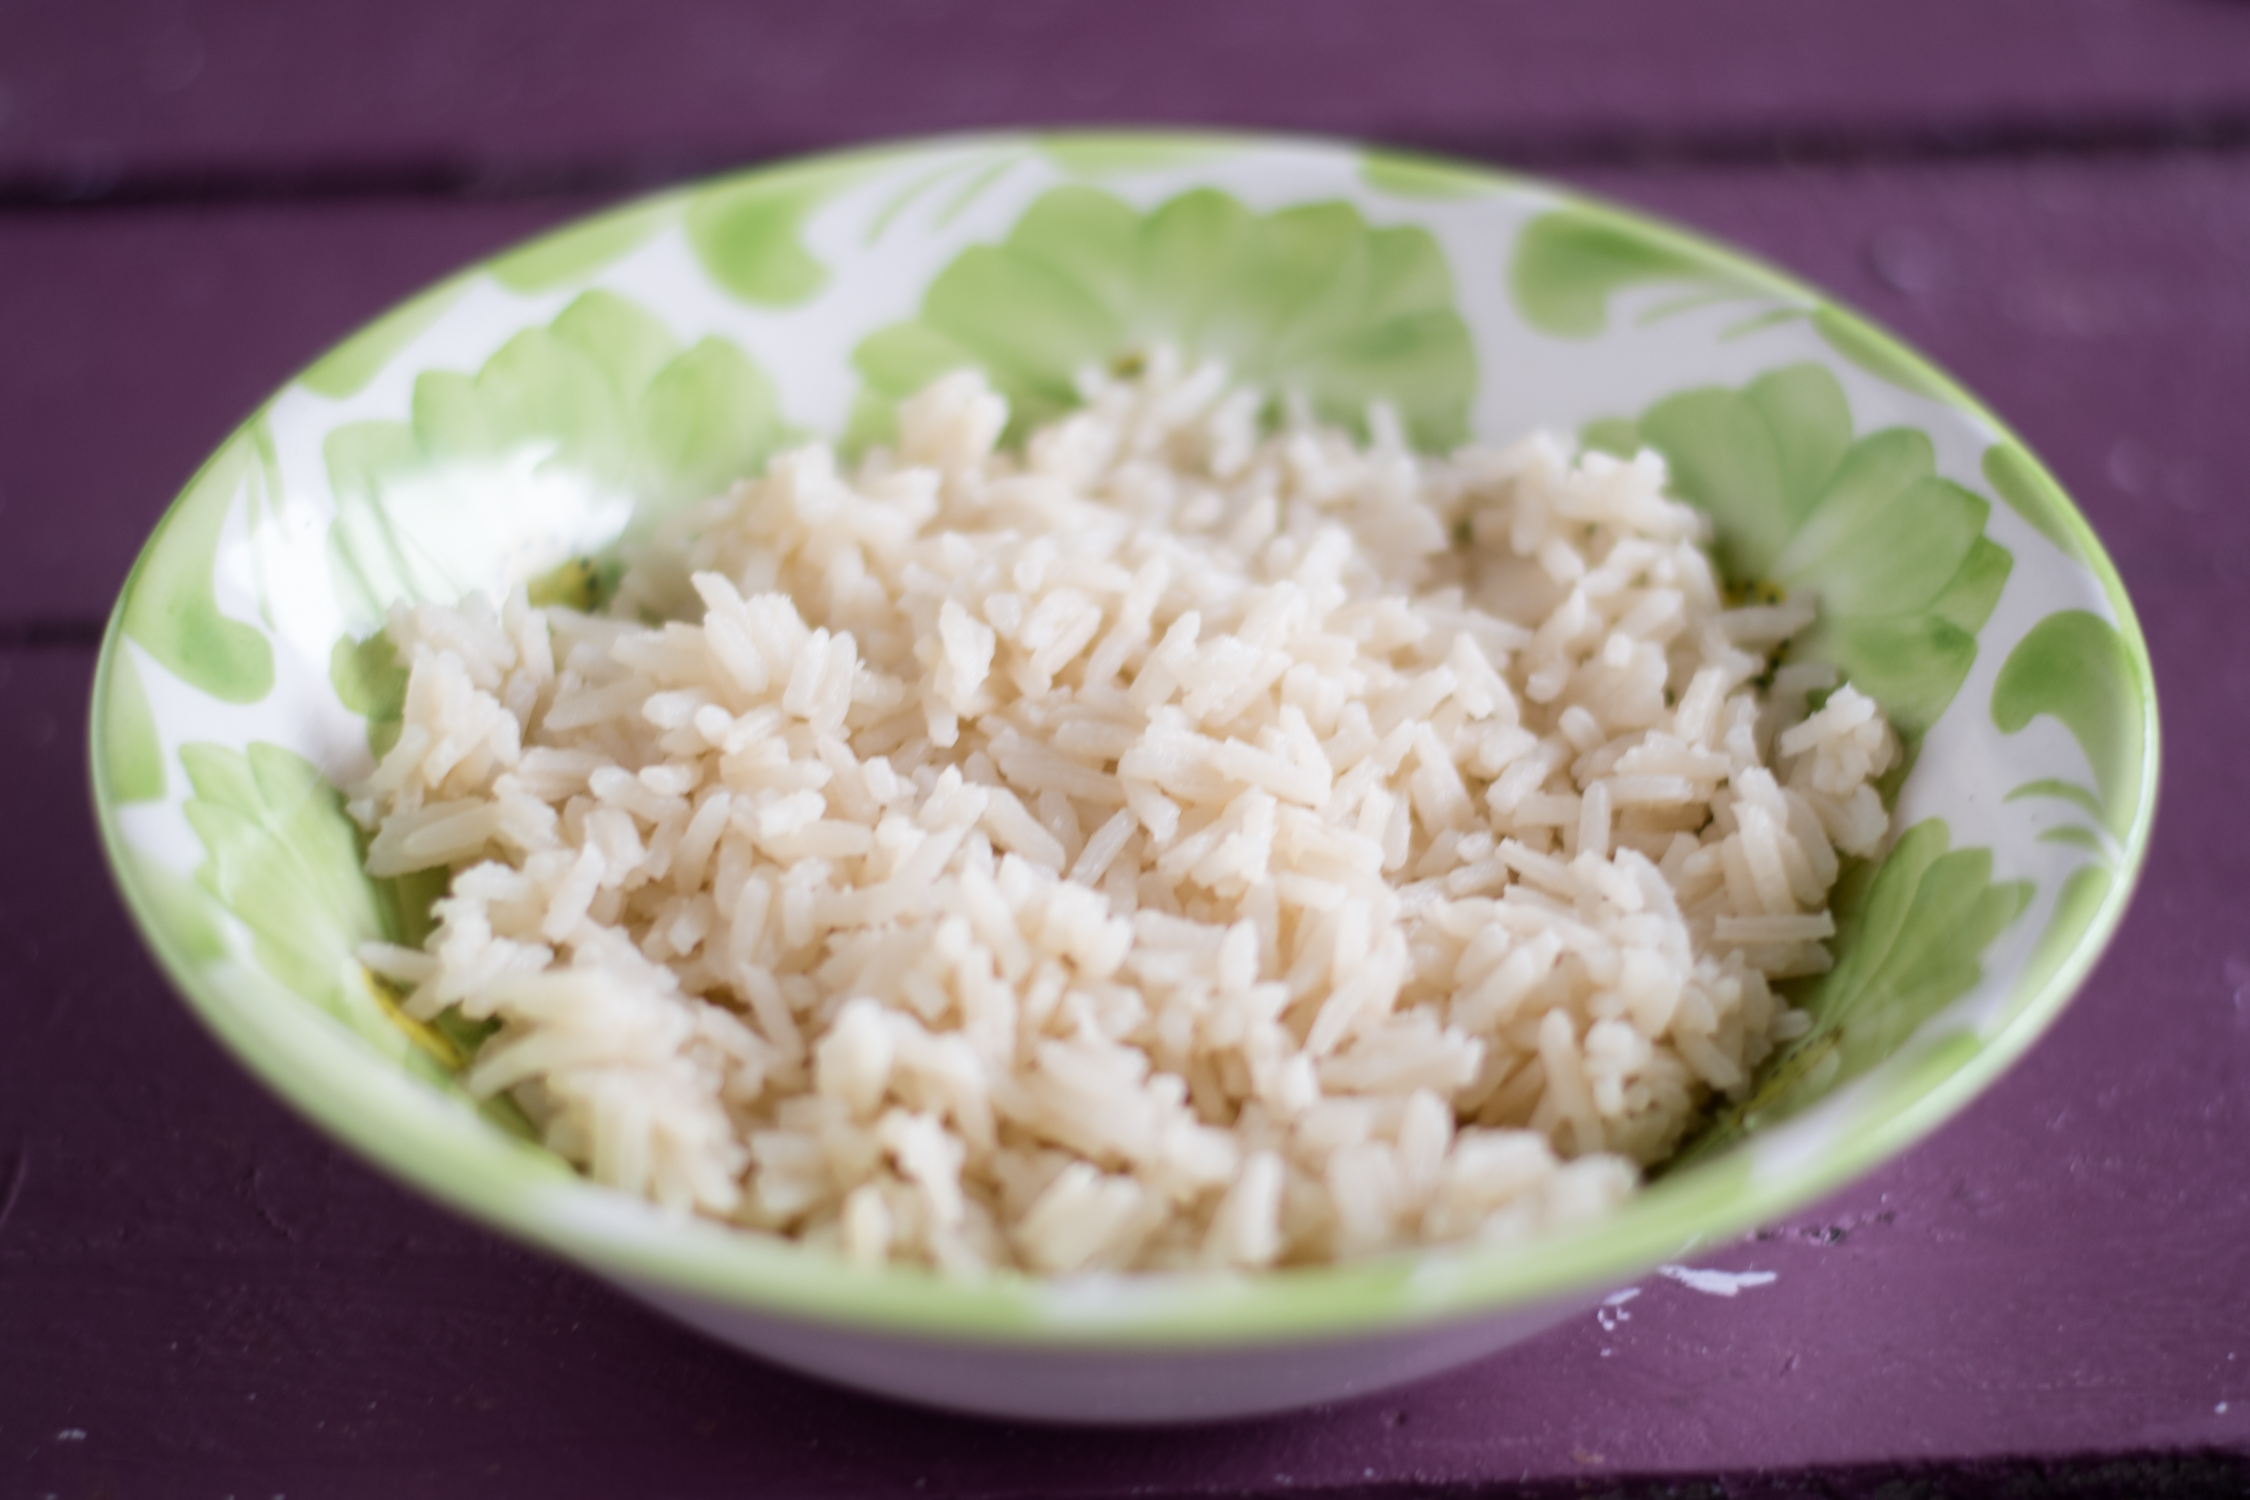 ooking rice in brewed green tea adds so much flavor to the rice.#rice #Asian #greentea #vegan #side #easyrecipes